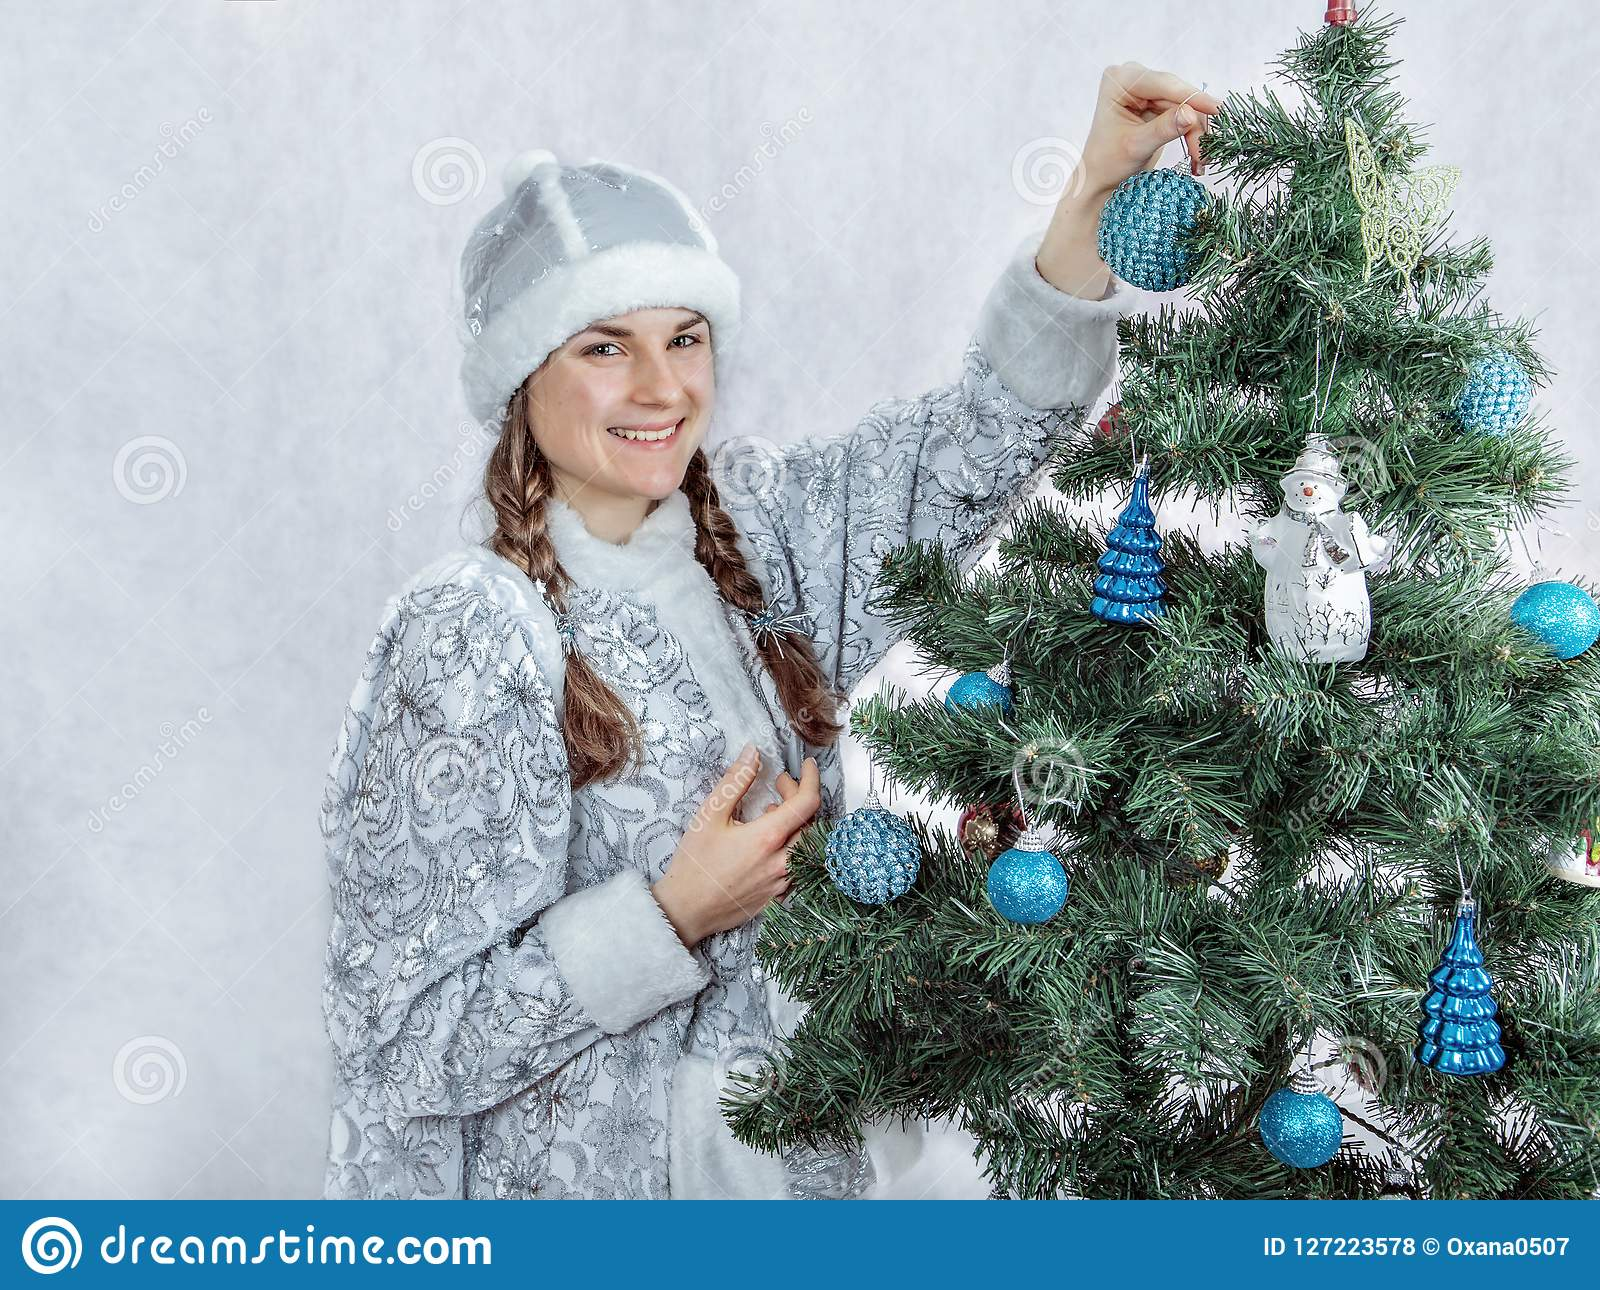 Beautiful snow girl is decorating a Christmas tree. New Year and Christmas.